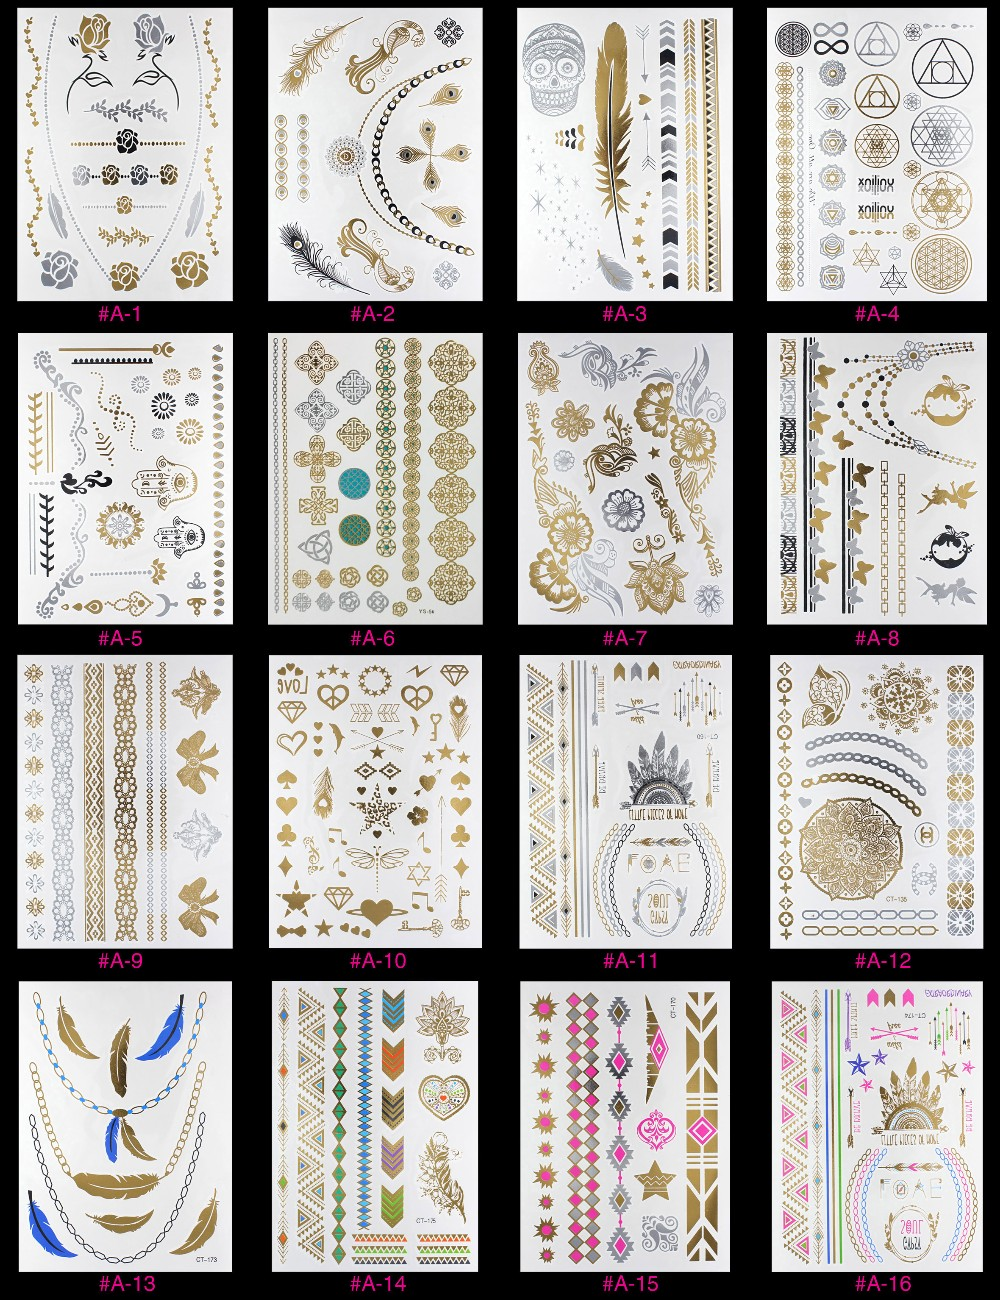 New Design Flash Removable Waterproof Gold Tattoos Metallic Temporary Tattoo Stickers Temporary Body Art Tattoo 12